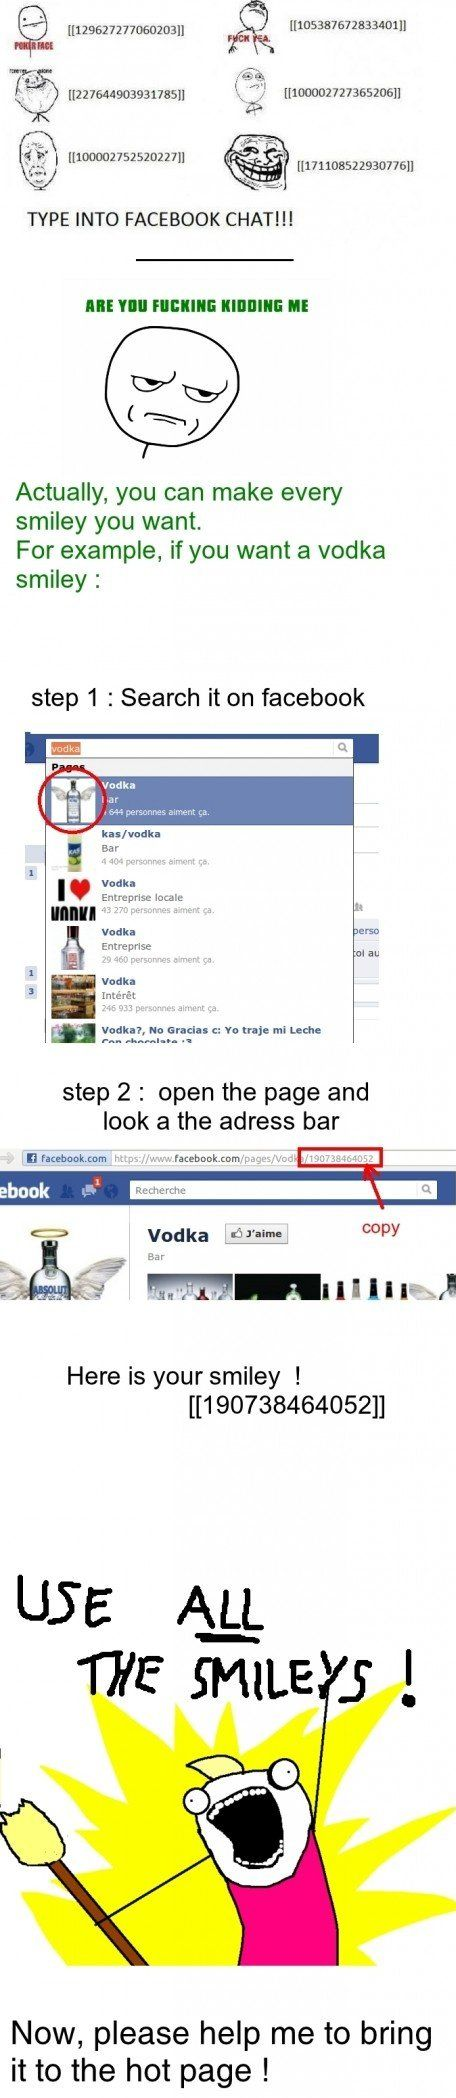 Cool Facebook Chat Trick (1 pic)